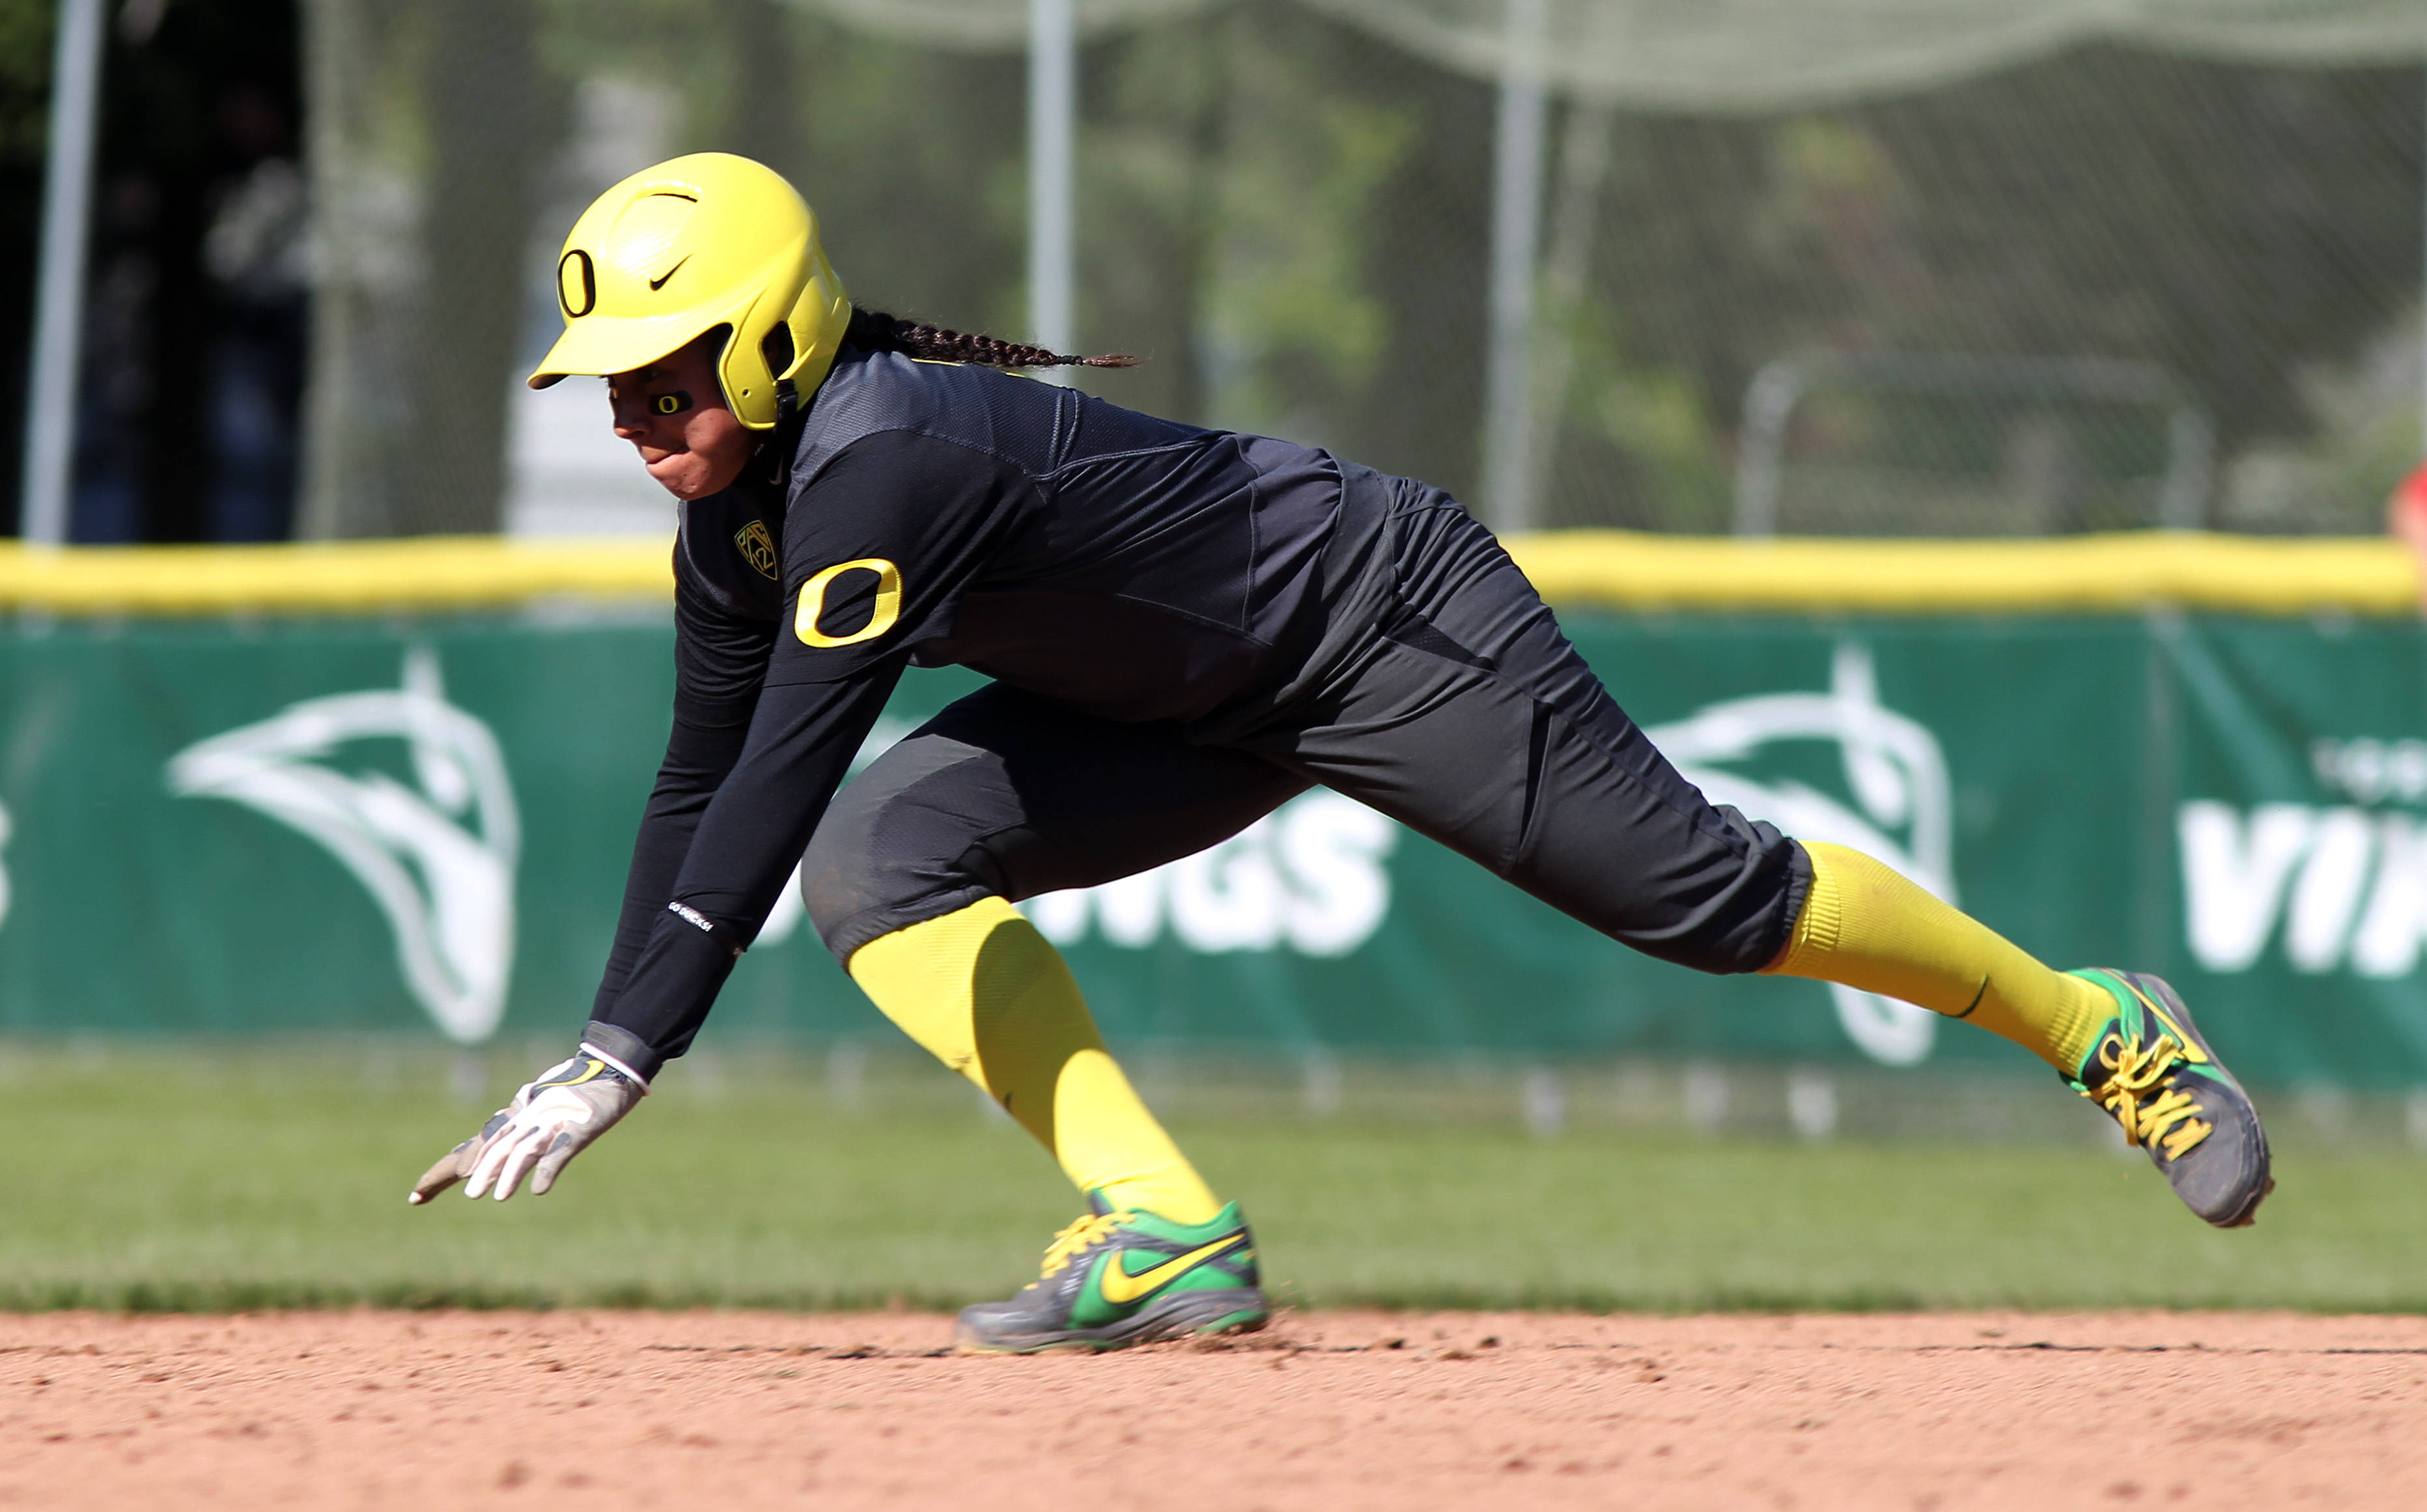 Does not seattle womens gay softball remarkable, valuable